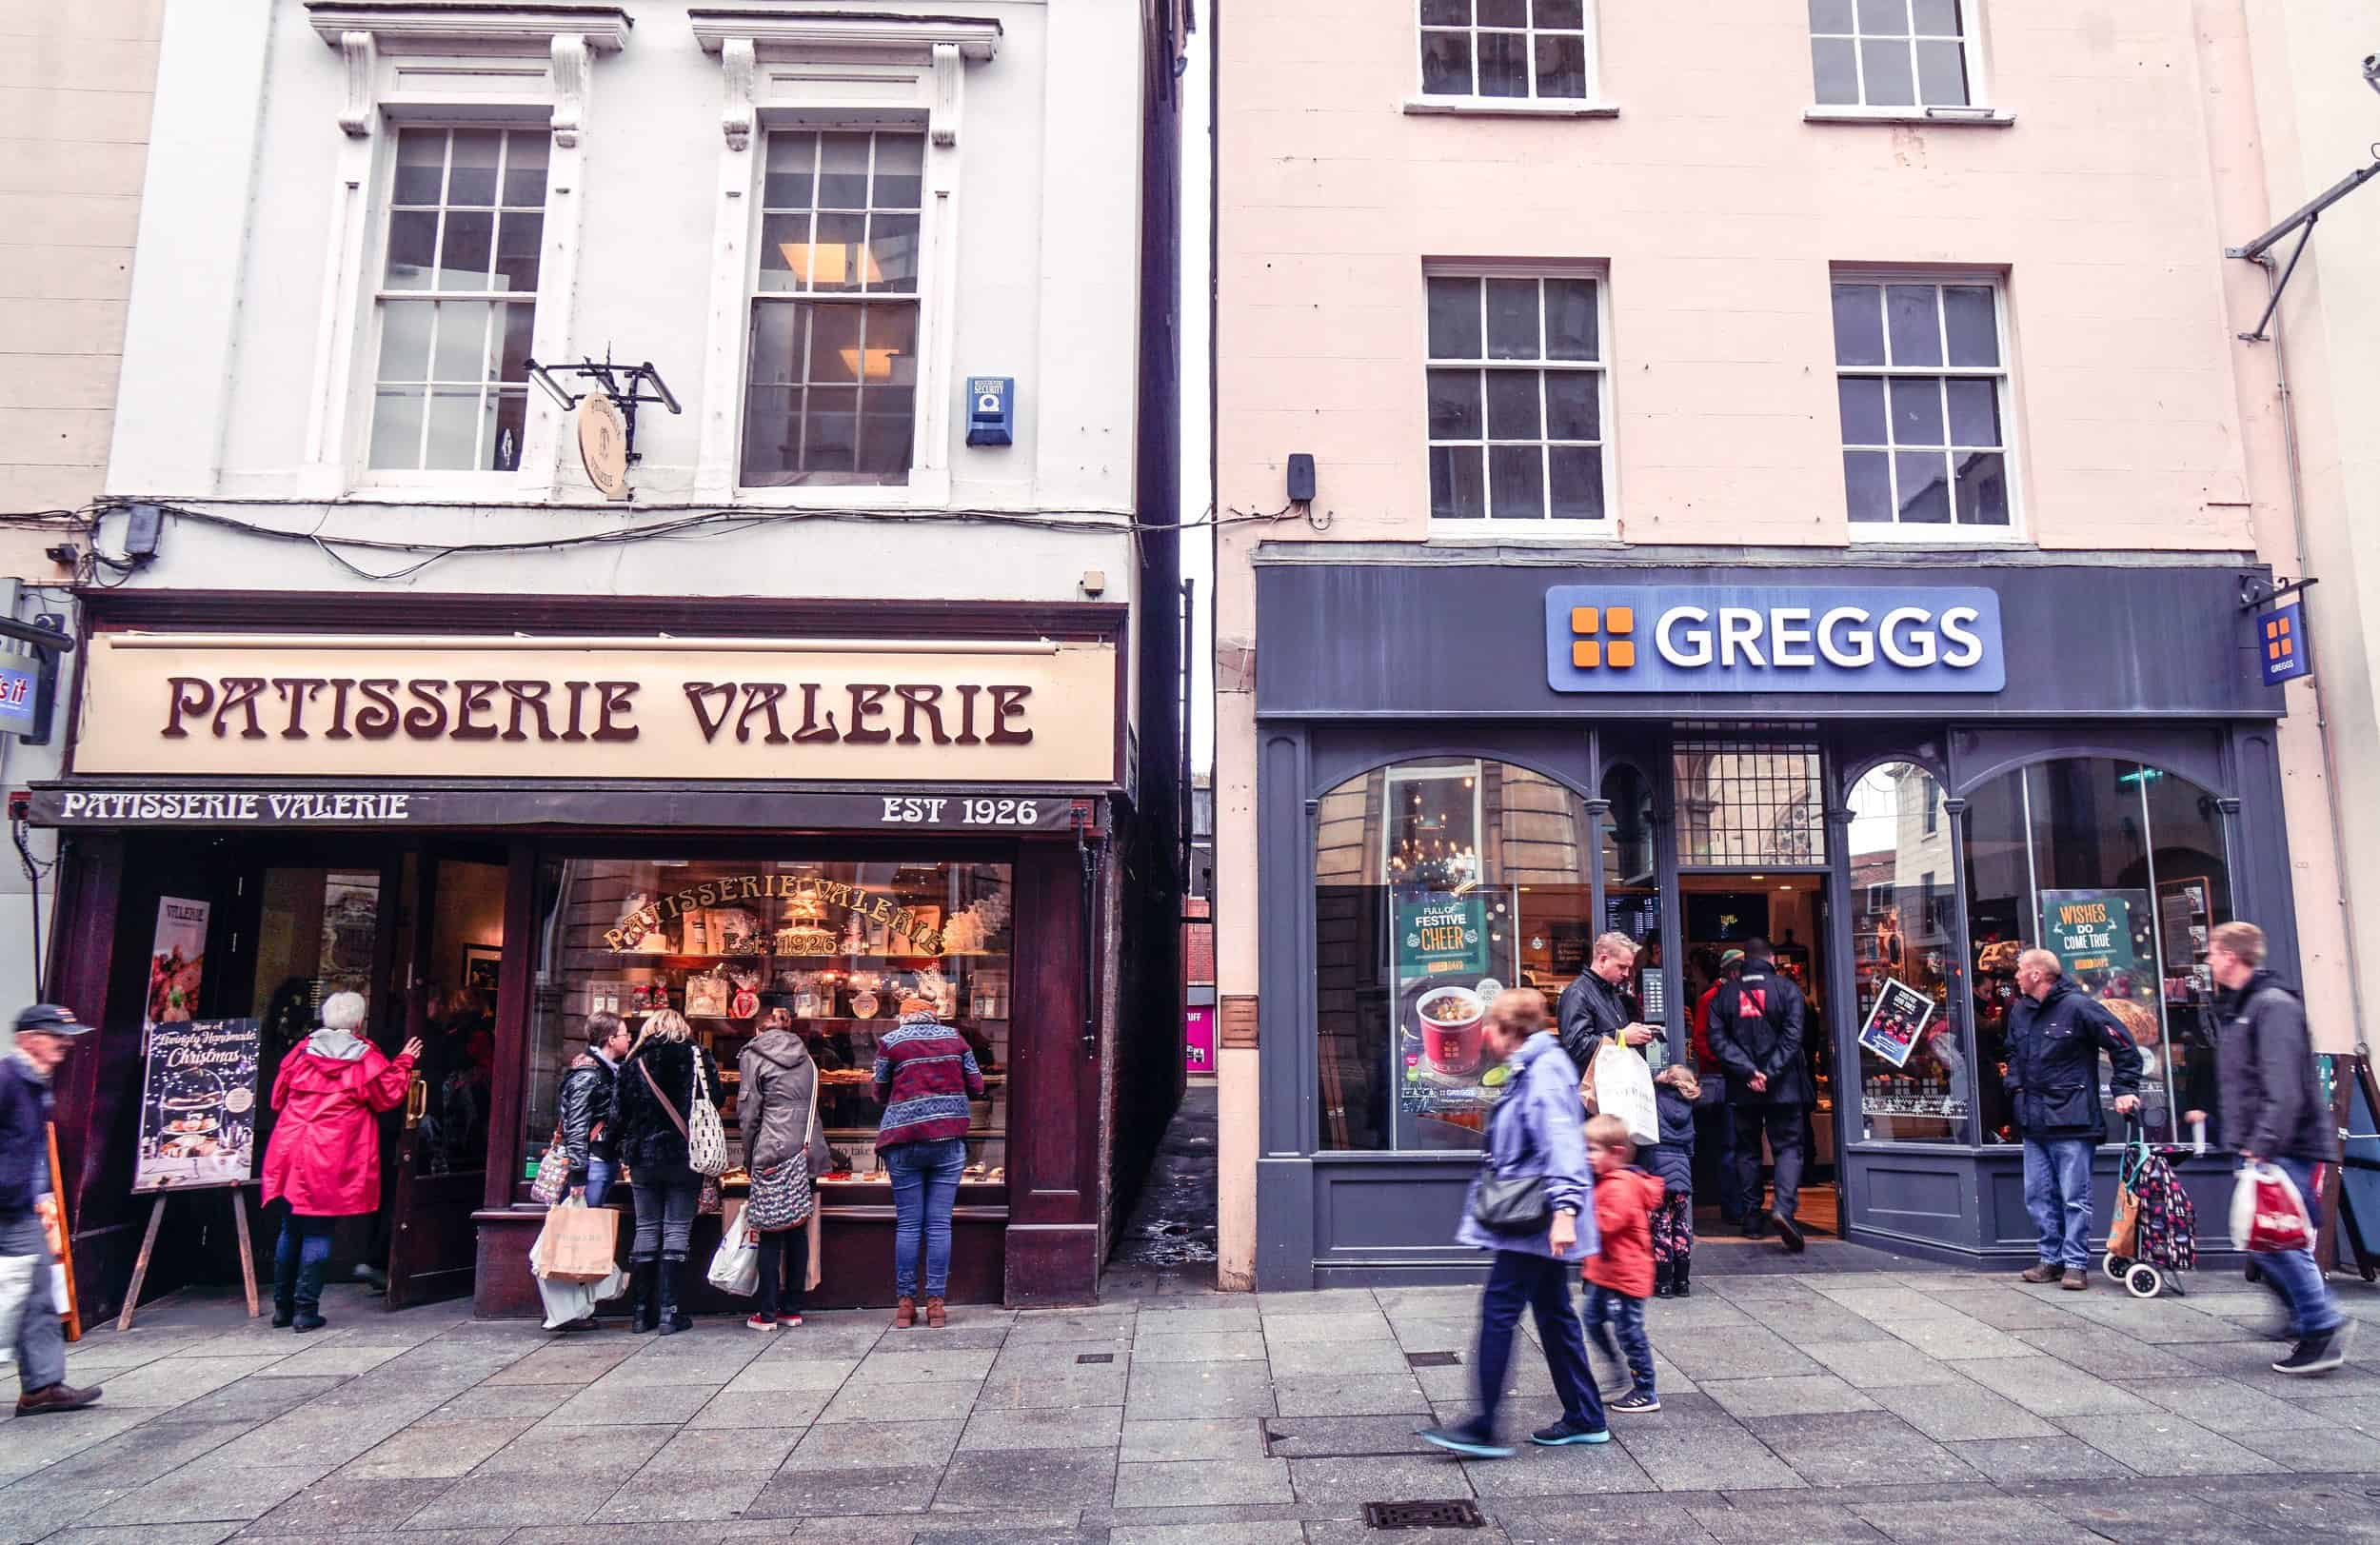 Walking down parliament street in Exeter, Devon, England: thought by many to be the narrowest street in the world